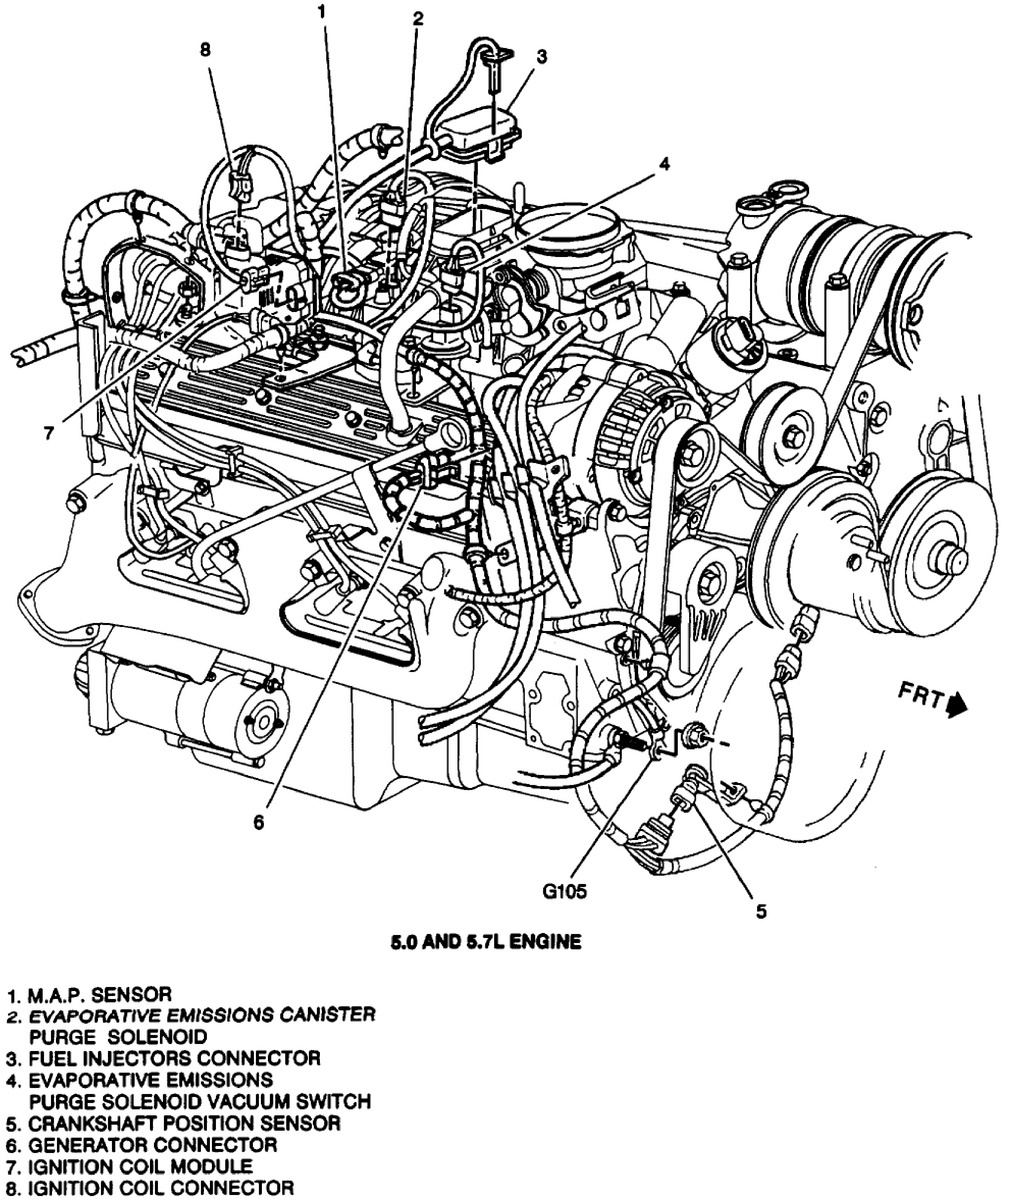 hight resolution of tahoe engine diagram my wiring diagram 2005 tahoe engine diagram 1999 chevy tahoe engine diagram wiring